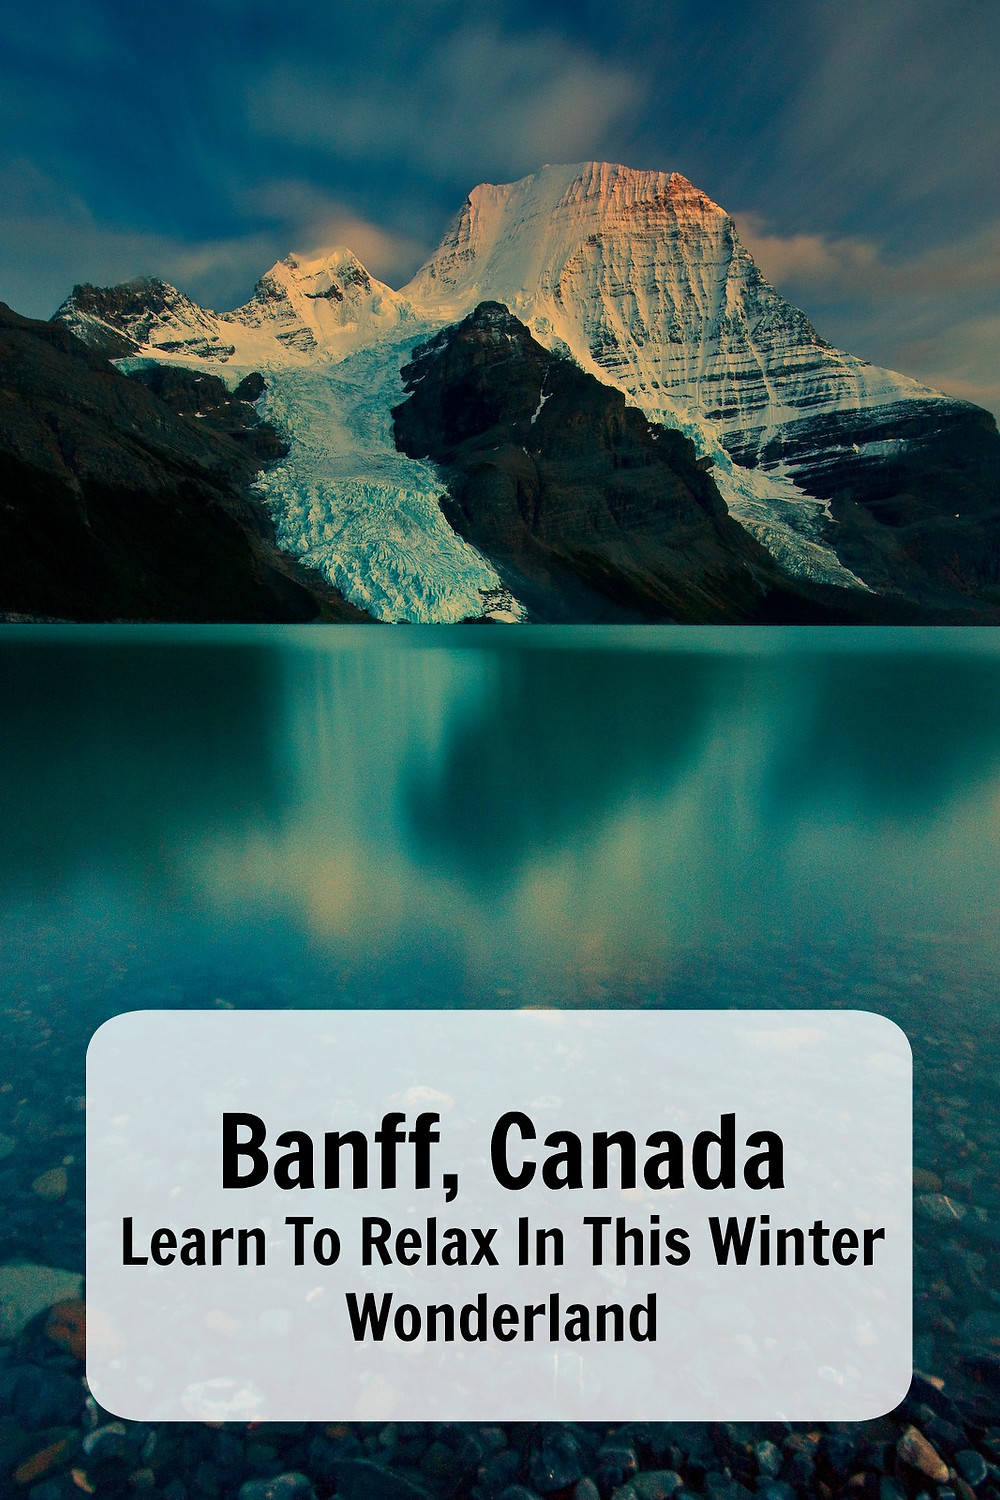 Travel guide to Banff, Canada